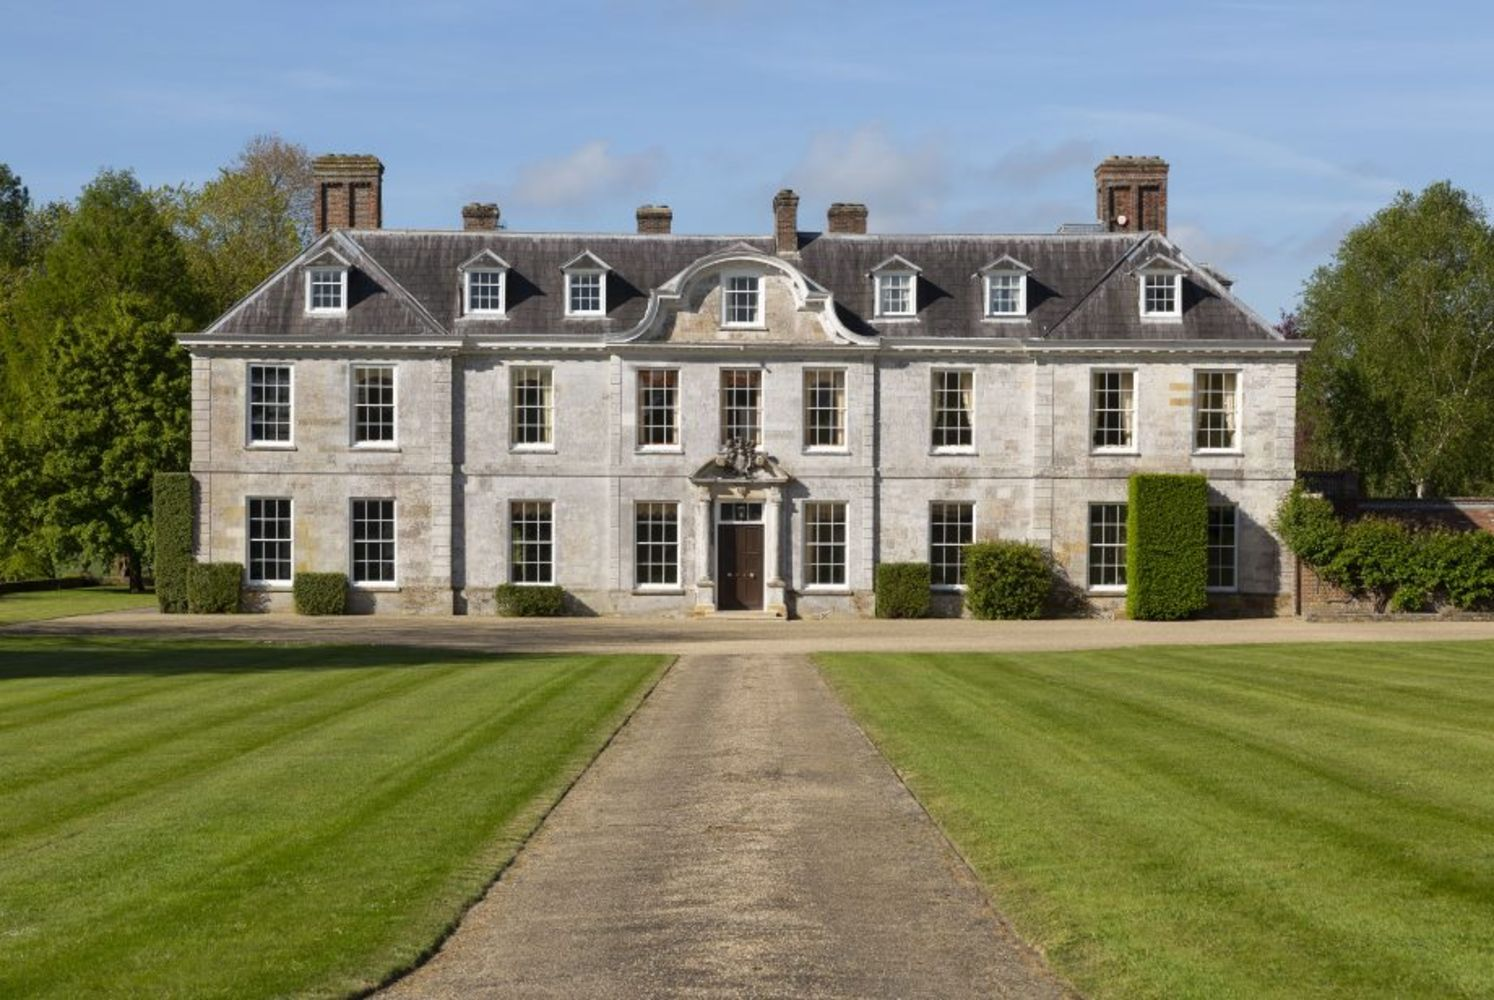 Dewlish House: An Auction of the Selected Contents